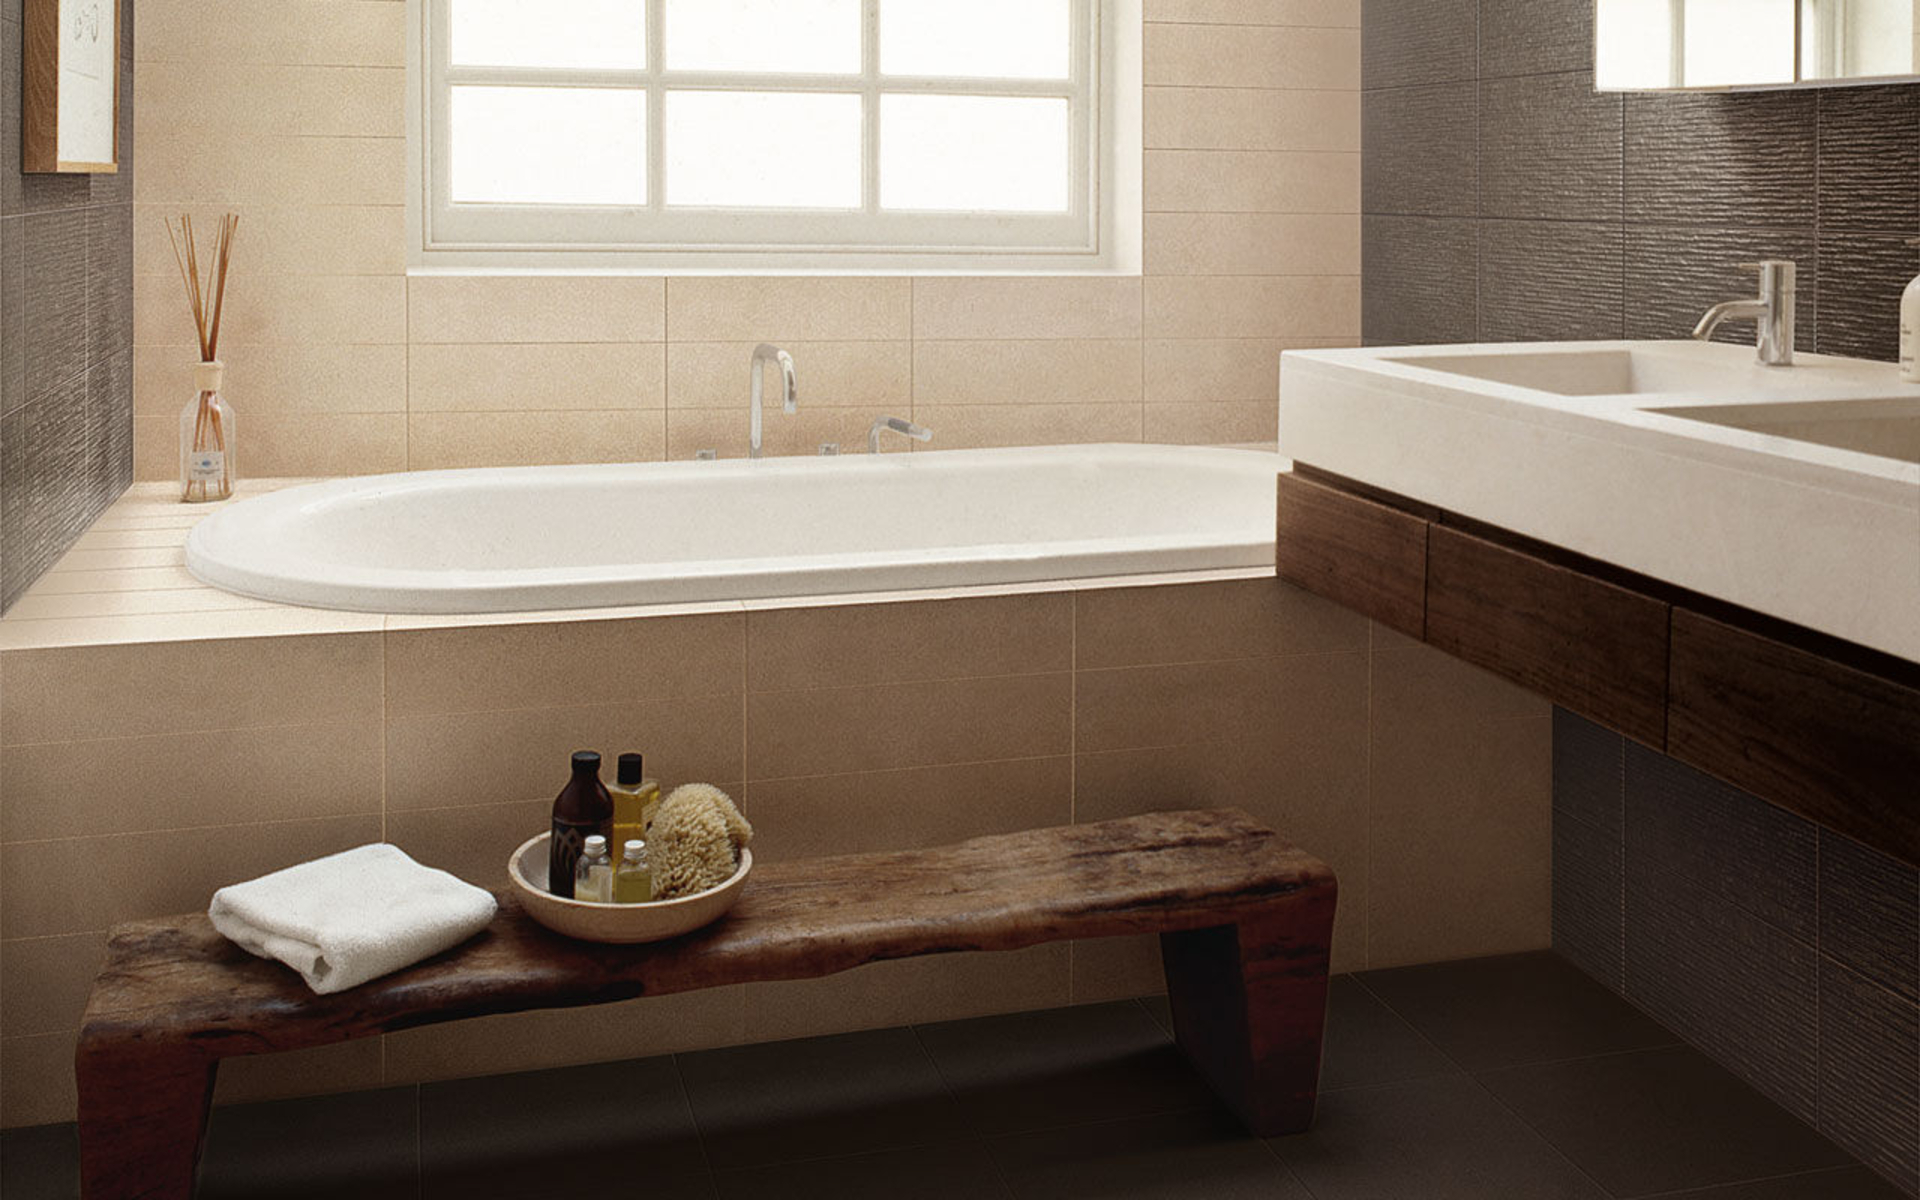 Beautiful-Bathtub-under-Glass-Window-near-White-Bathroom-Vanity-and-Ceramic-Wall-Tiles-Texture-on-Modern-Home-Picture